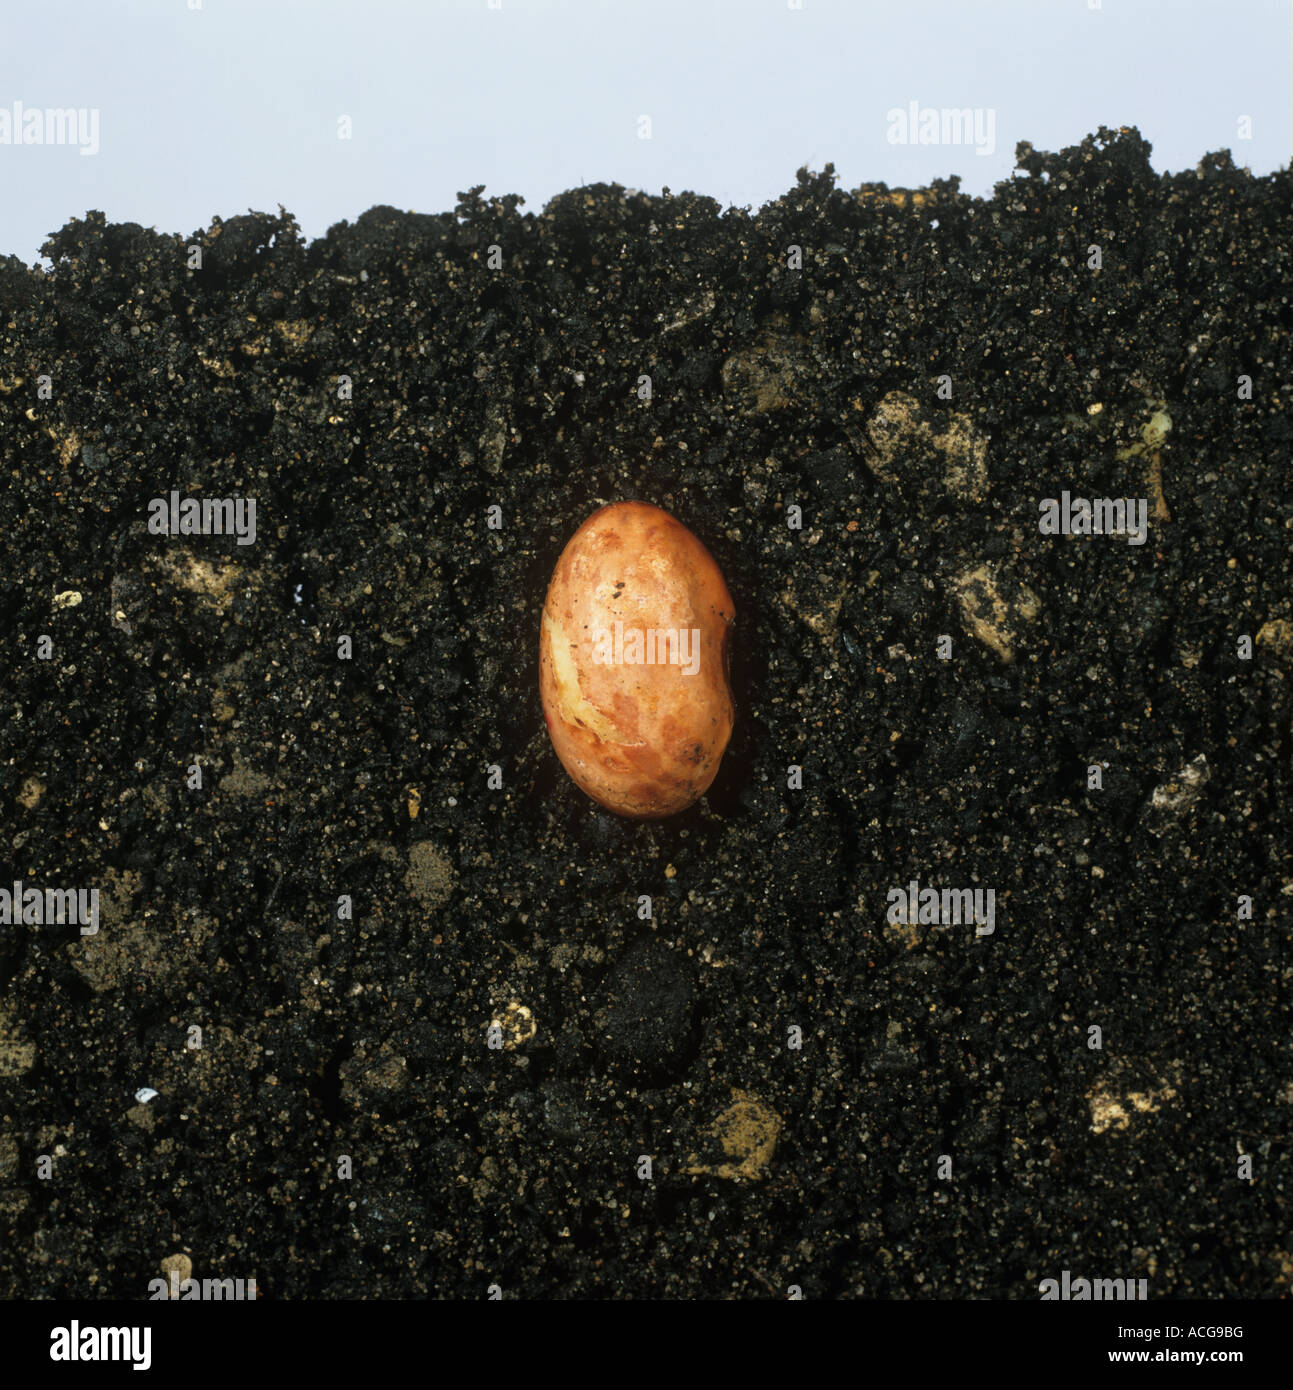 Bean seed germinating sequence seed - Stock Image